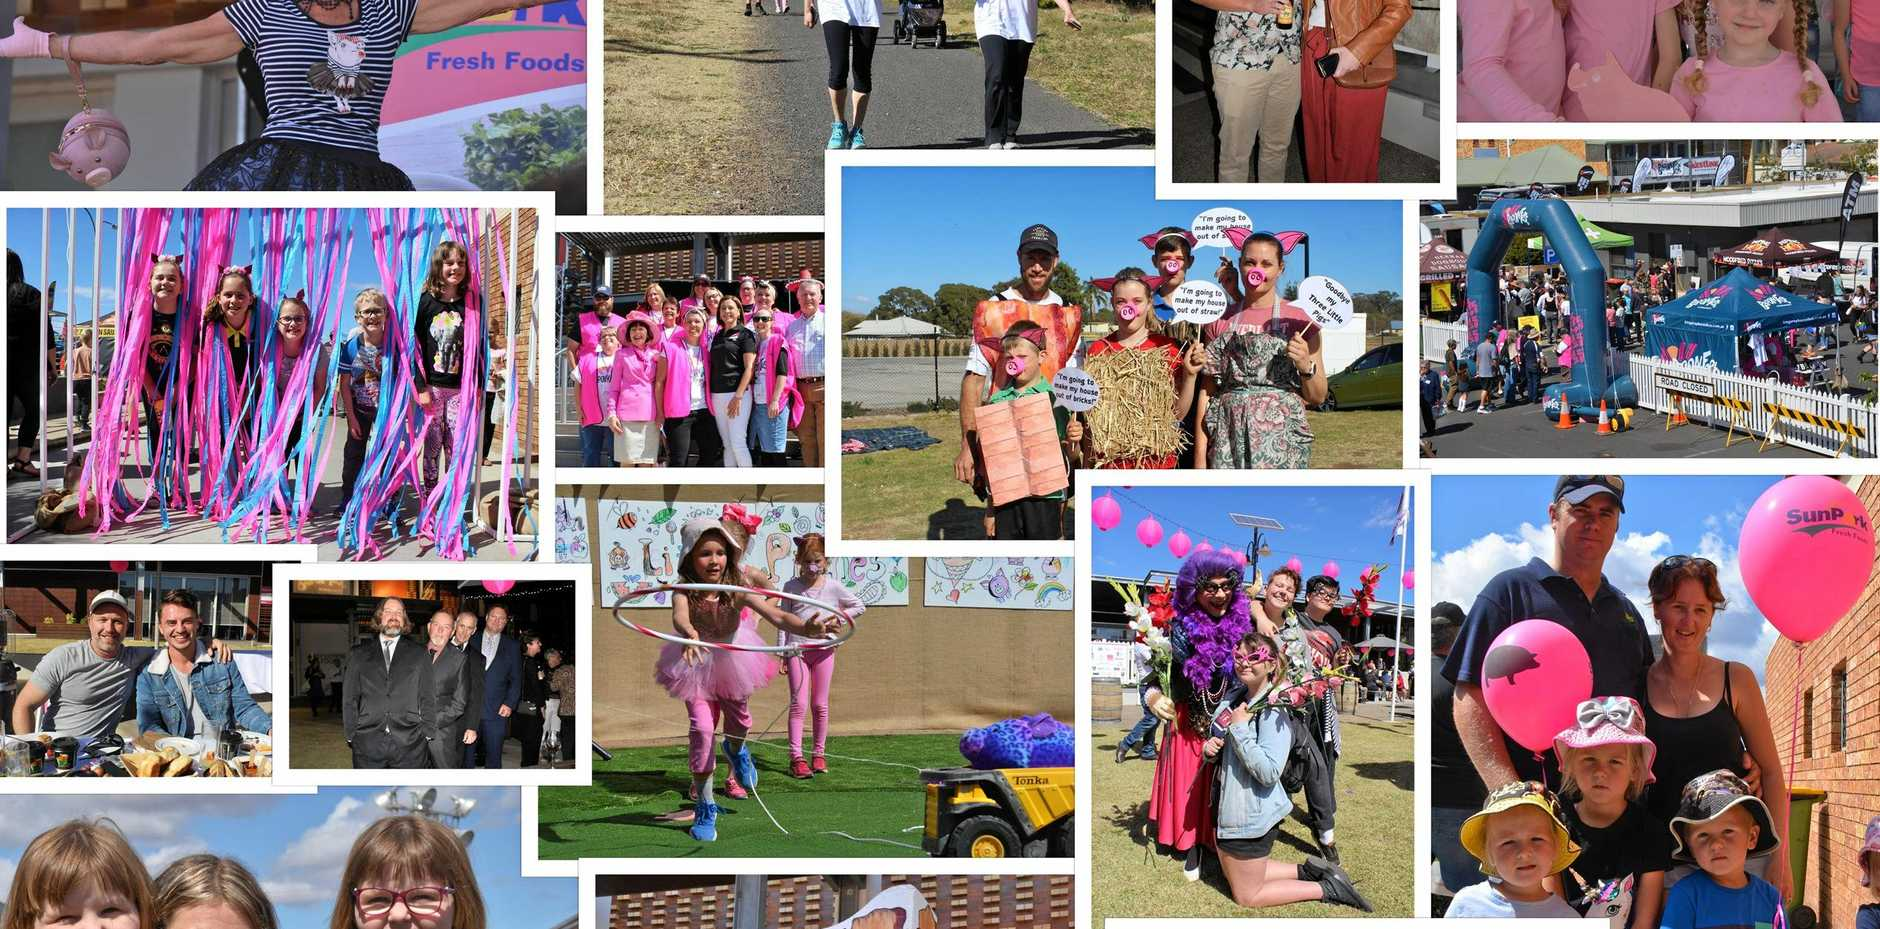 BACONFEST FUN: All the action from Kingaroy BaconFest 2019.